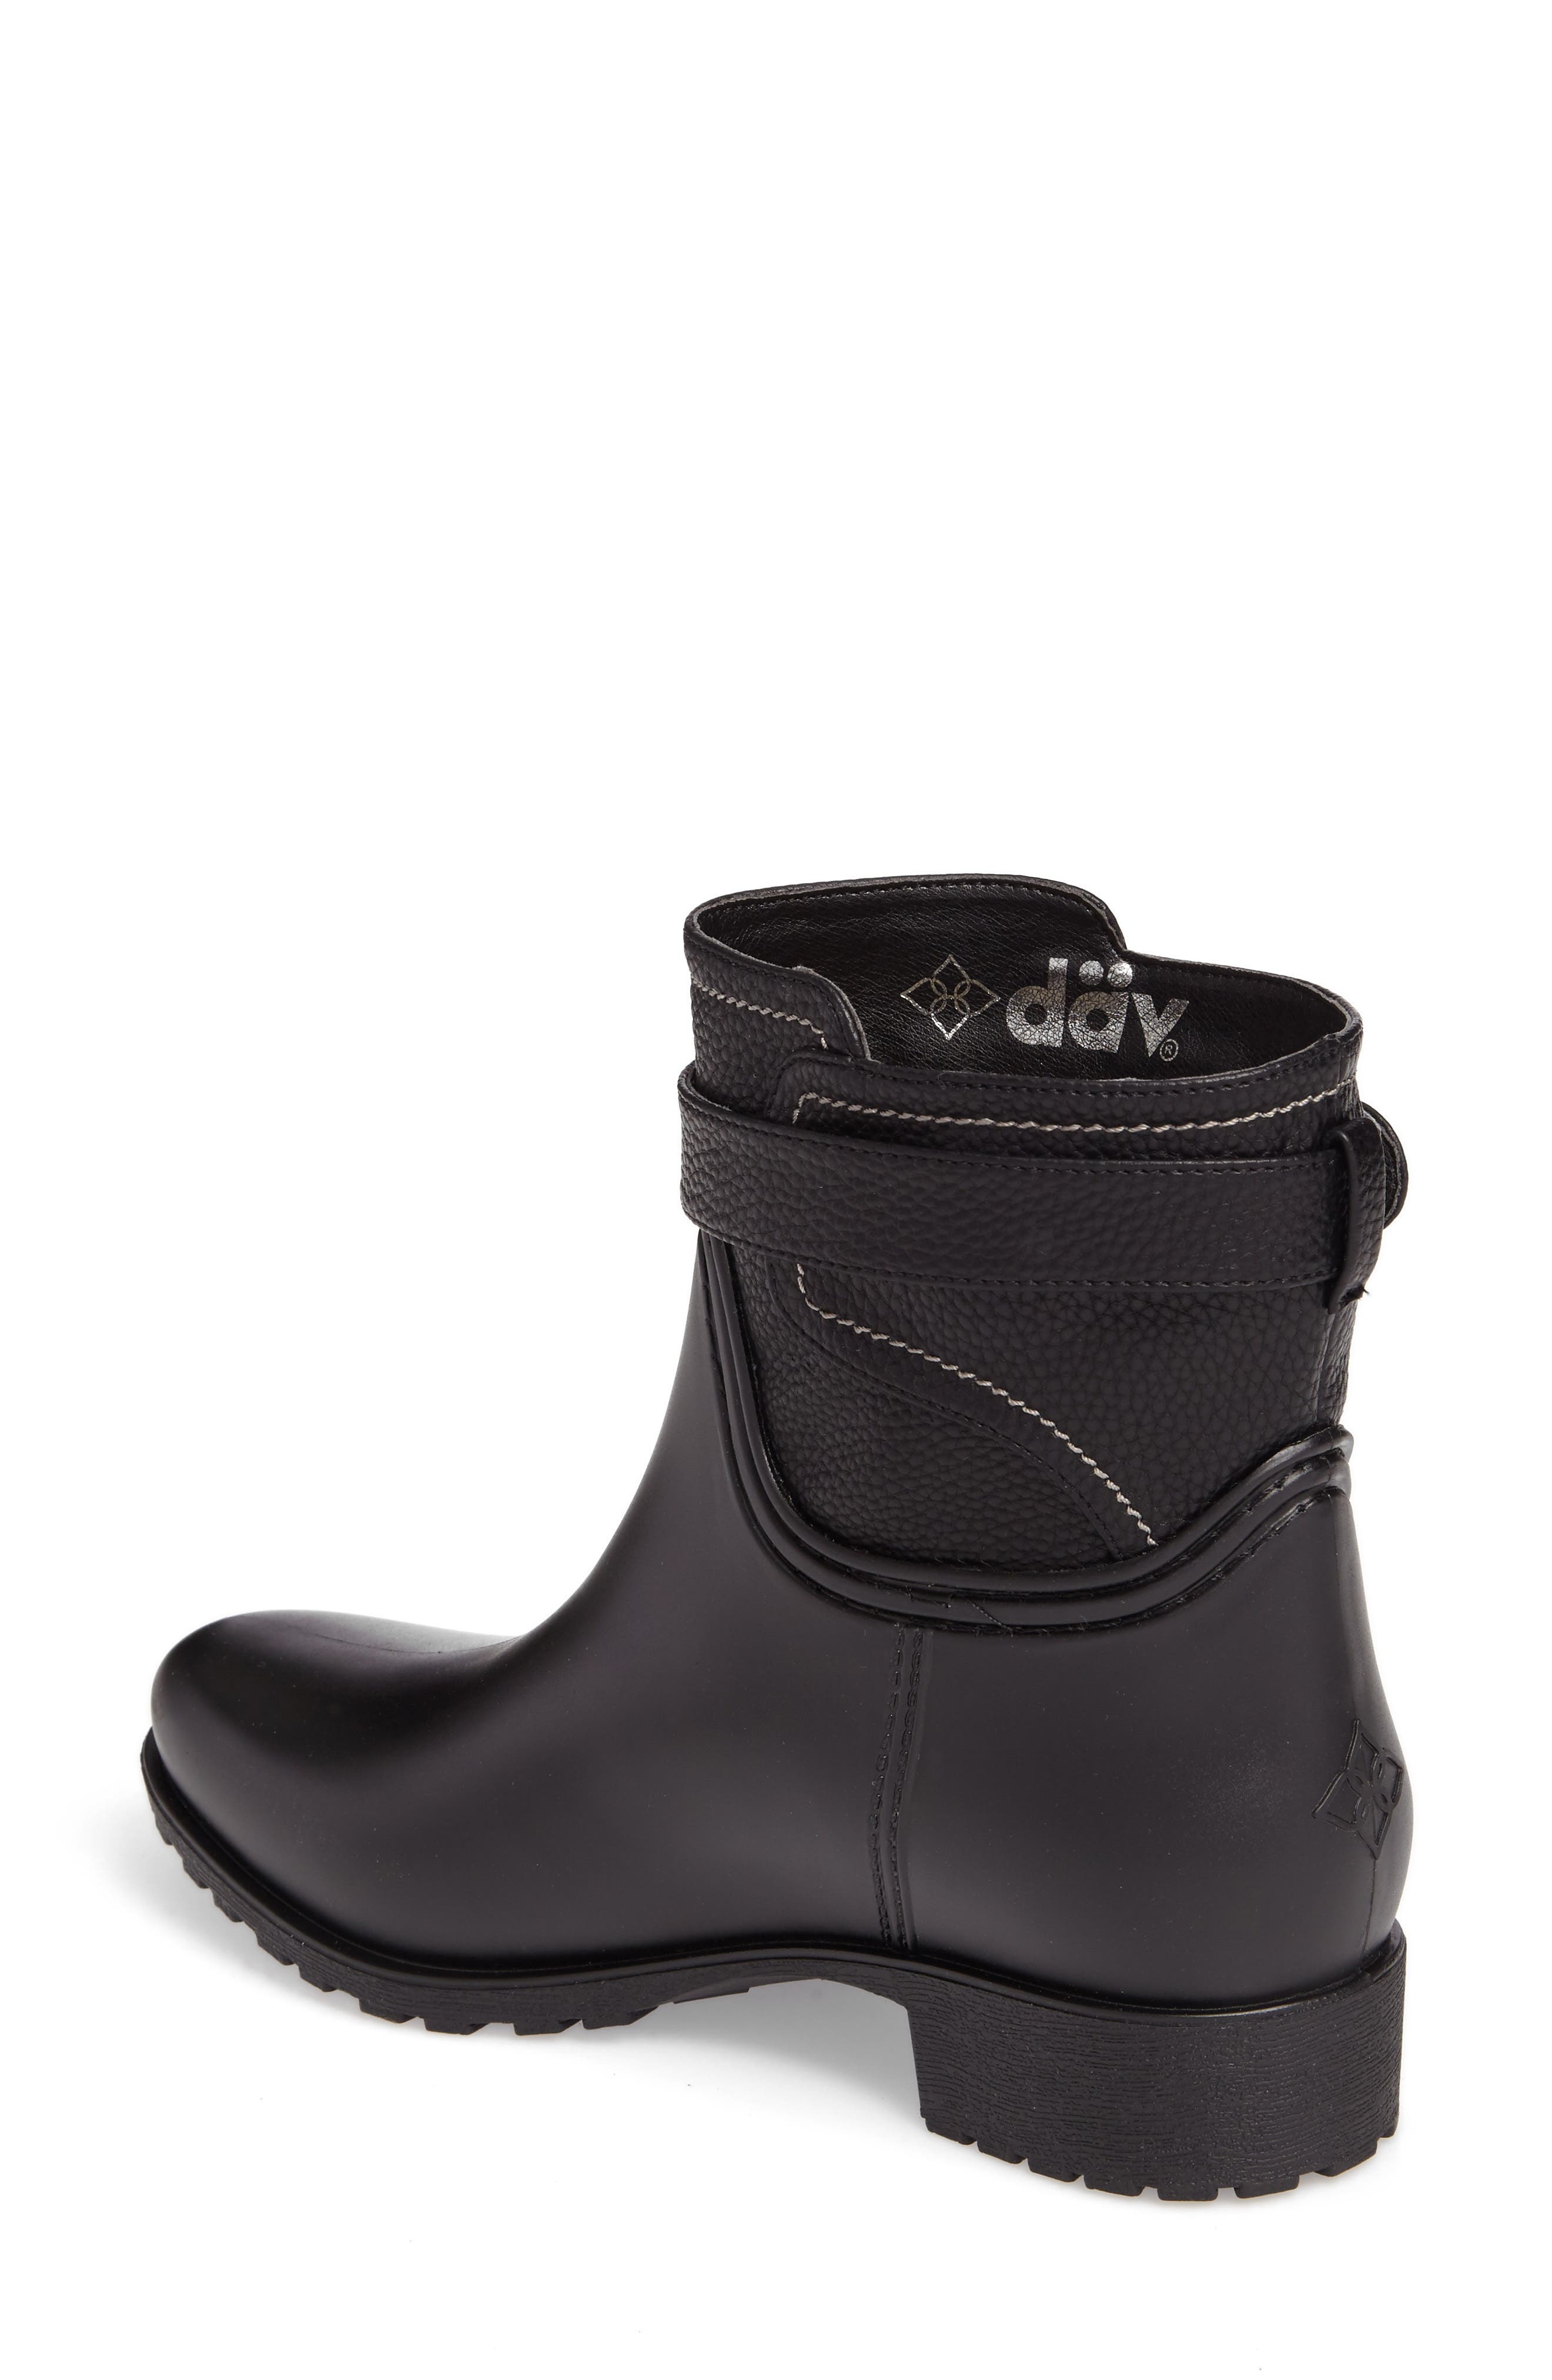 Bowie Faux Water Resistant Mid Boot,                             Alternate thumbnail 2, color,                             001